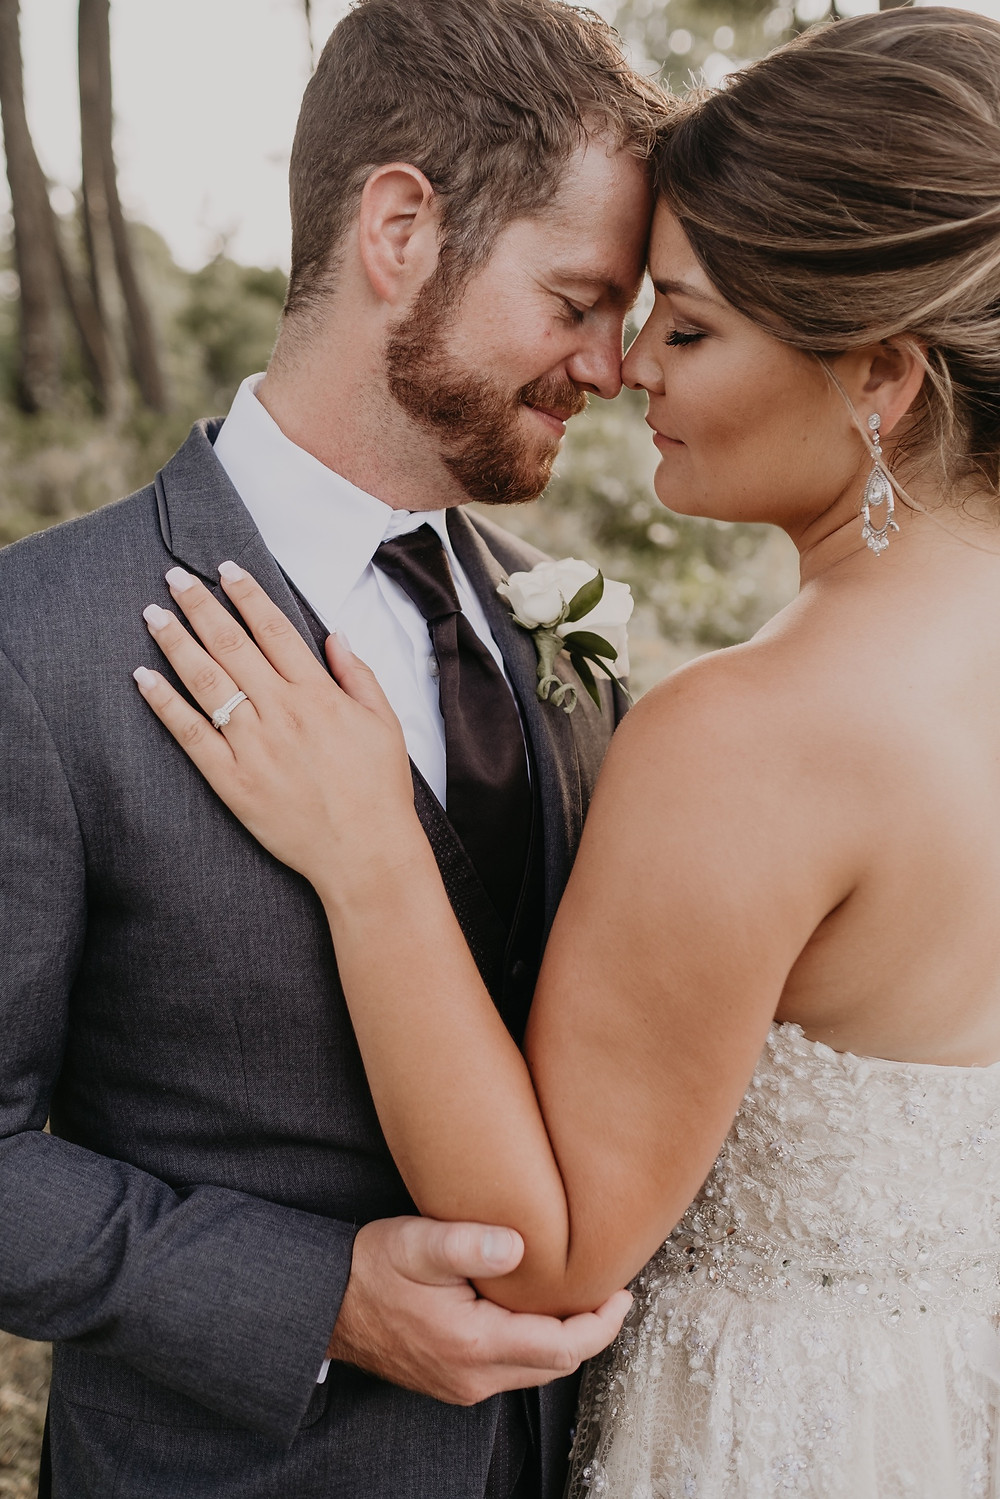 Bride and groom summer wedding in Metro Detroit. Photographed by Nicole Leanne Photography.